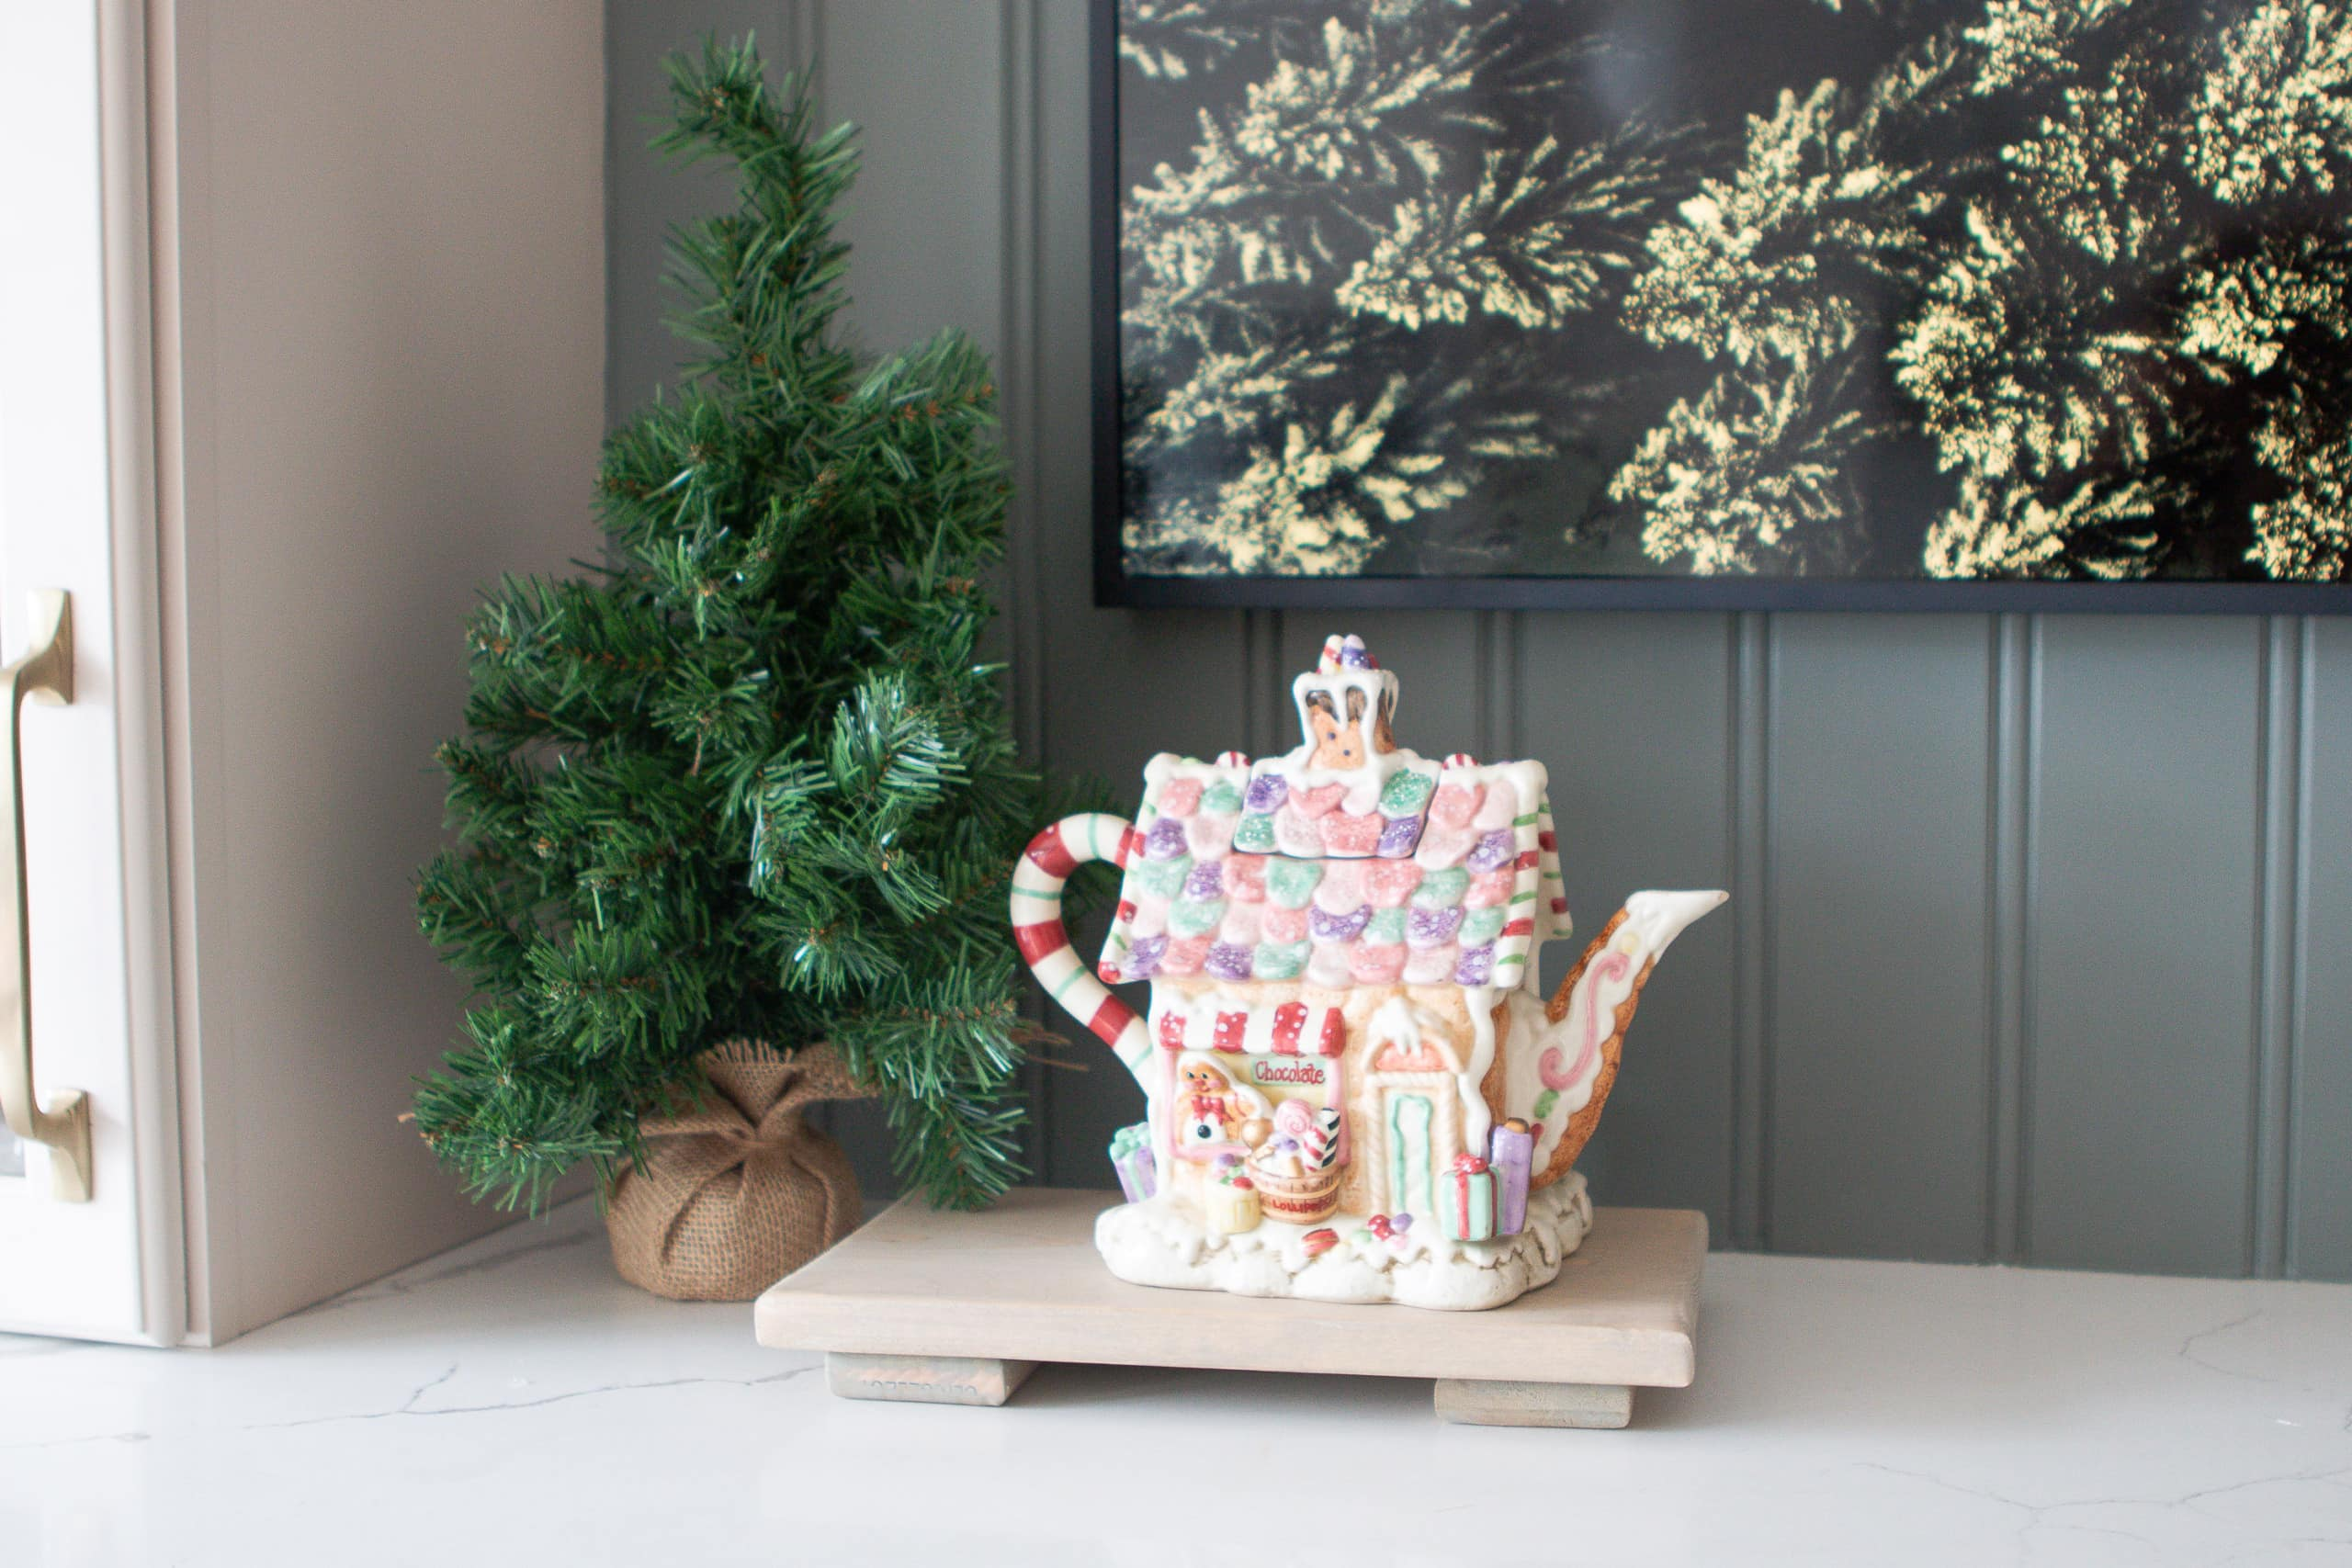 A gingerbread house teapot